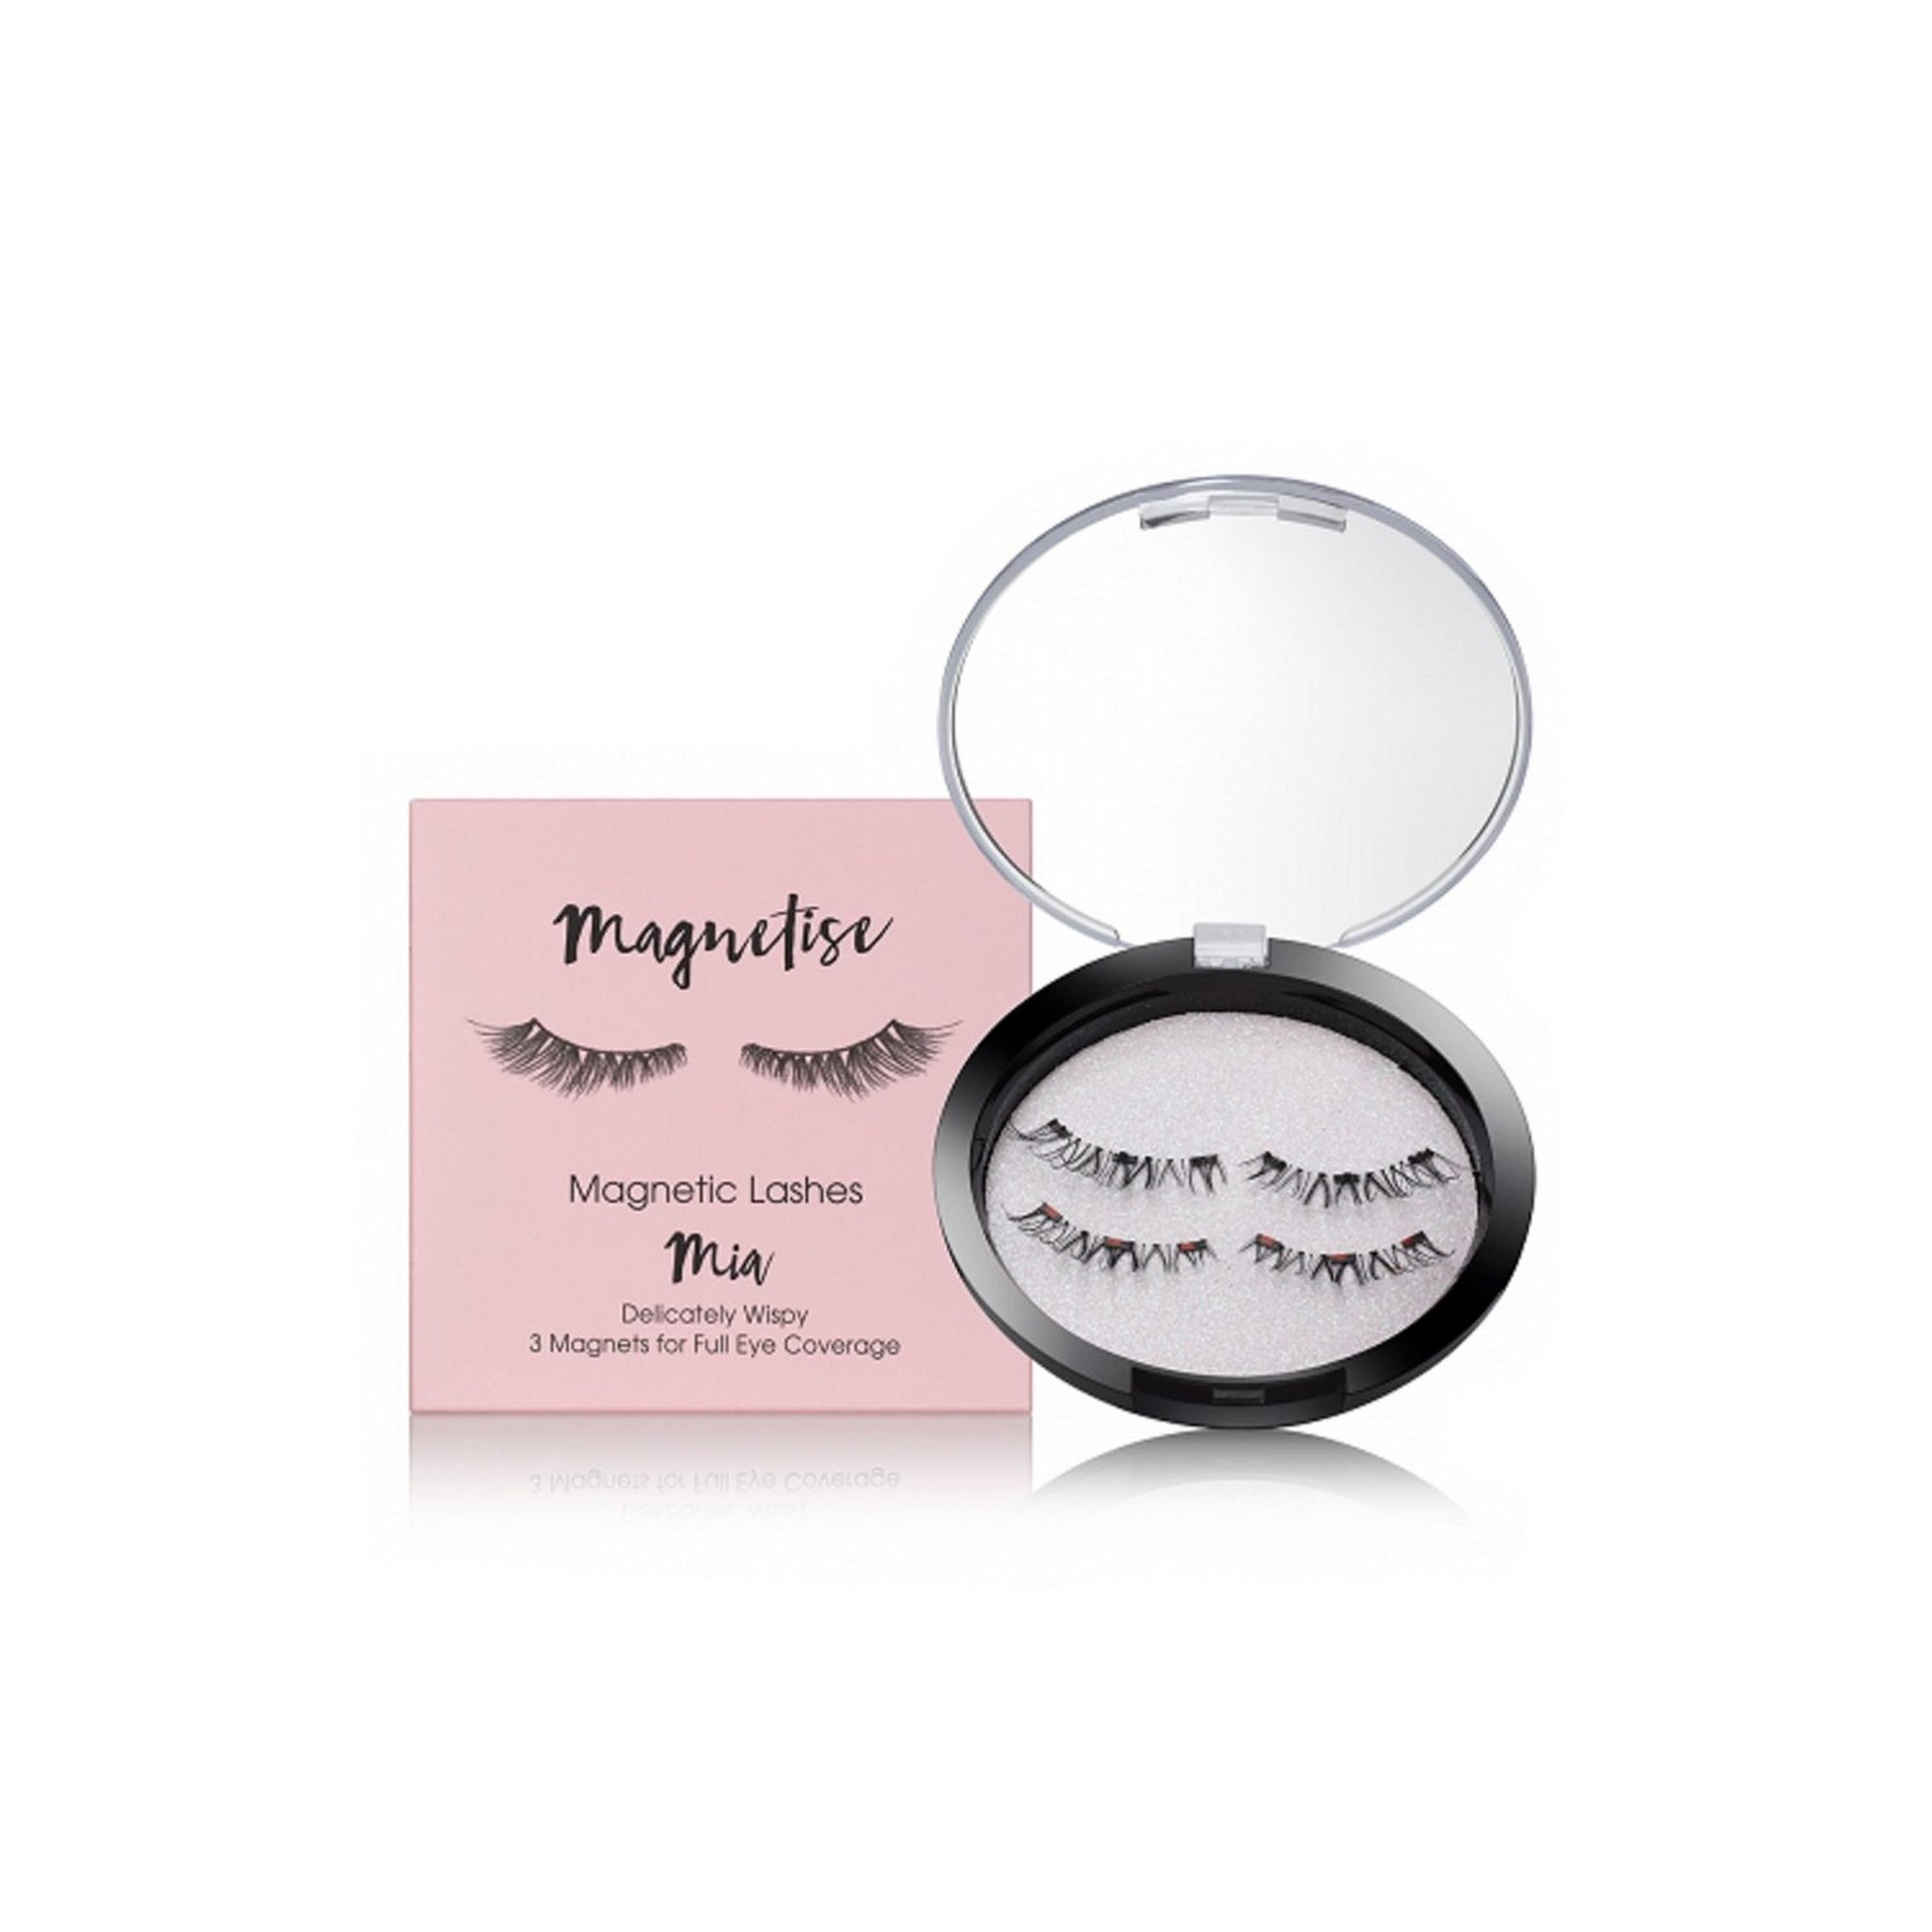 Image of Magnetise Magnetic Lashes in Mia